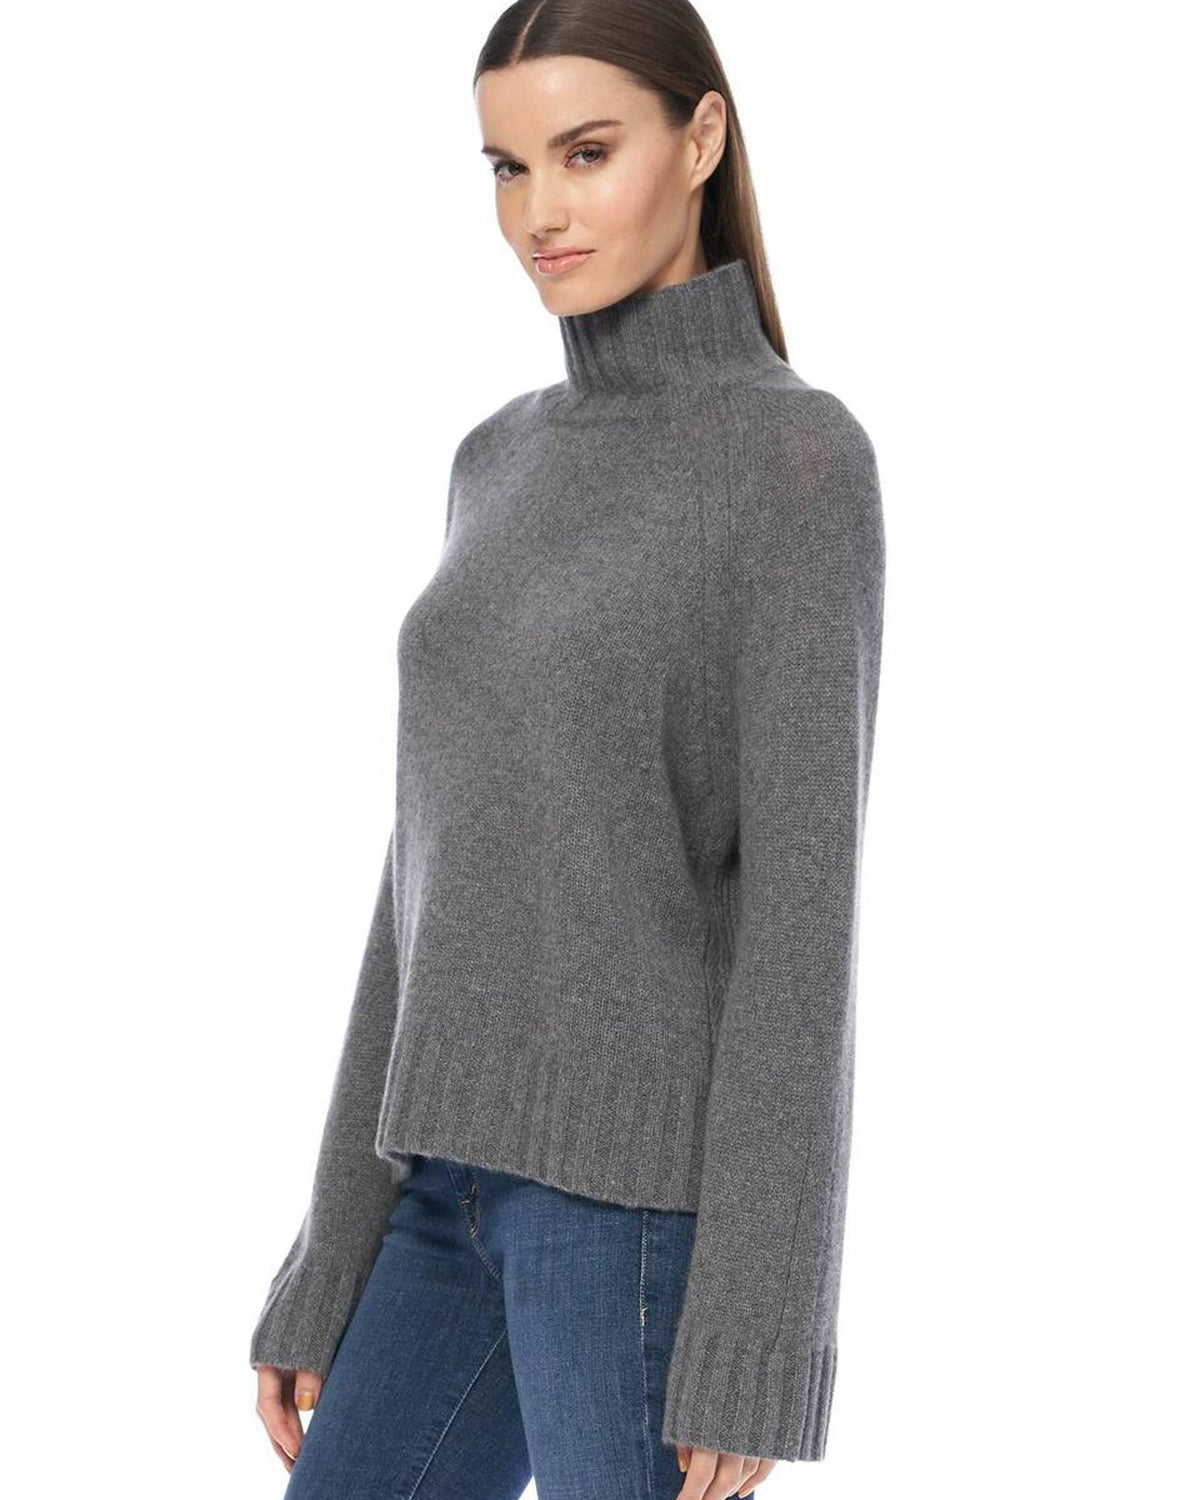 360 Cashmere Clothing Leighton Turtleneck in Mid Heather Grey